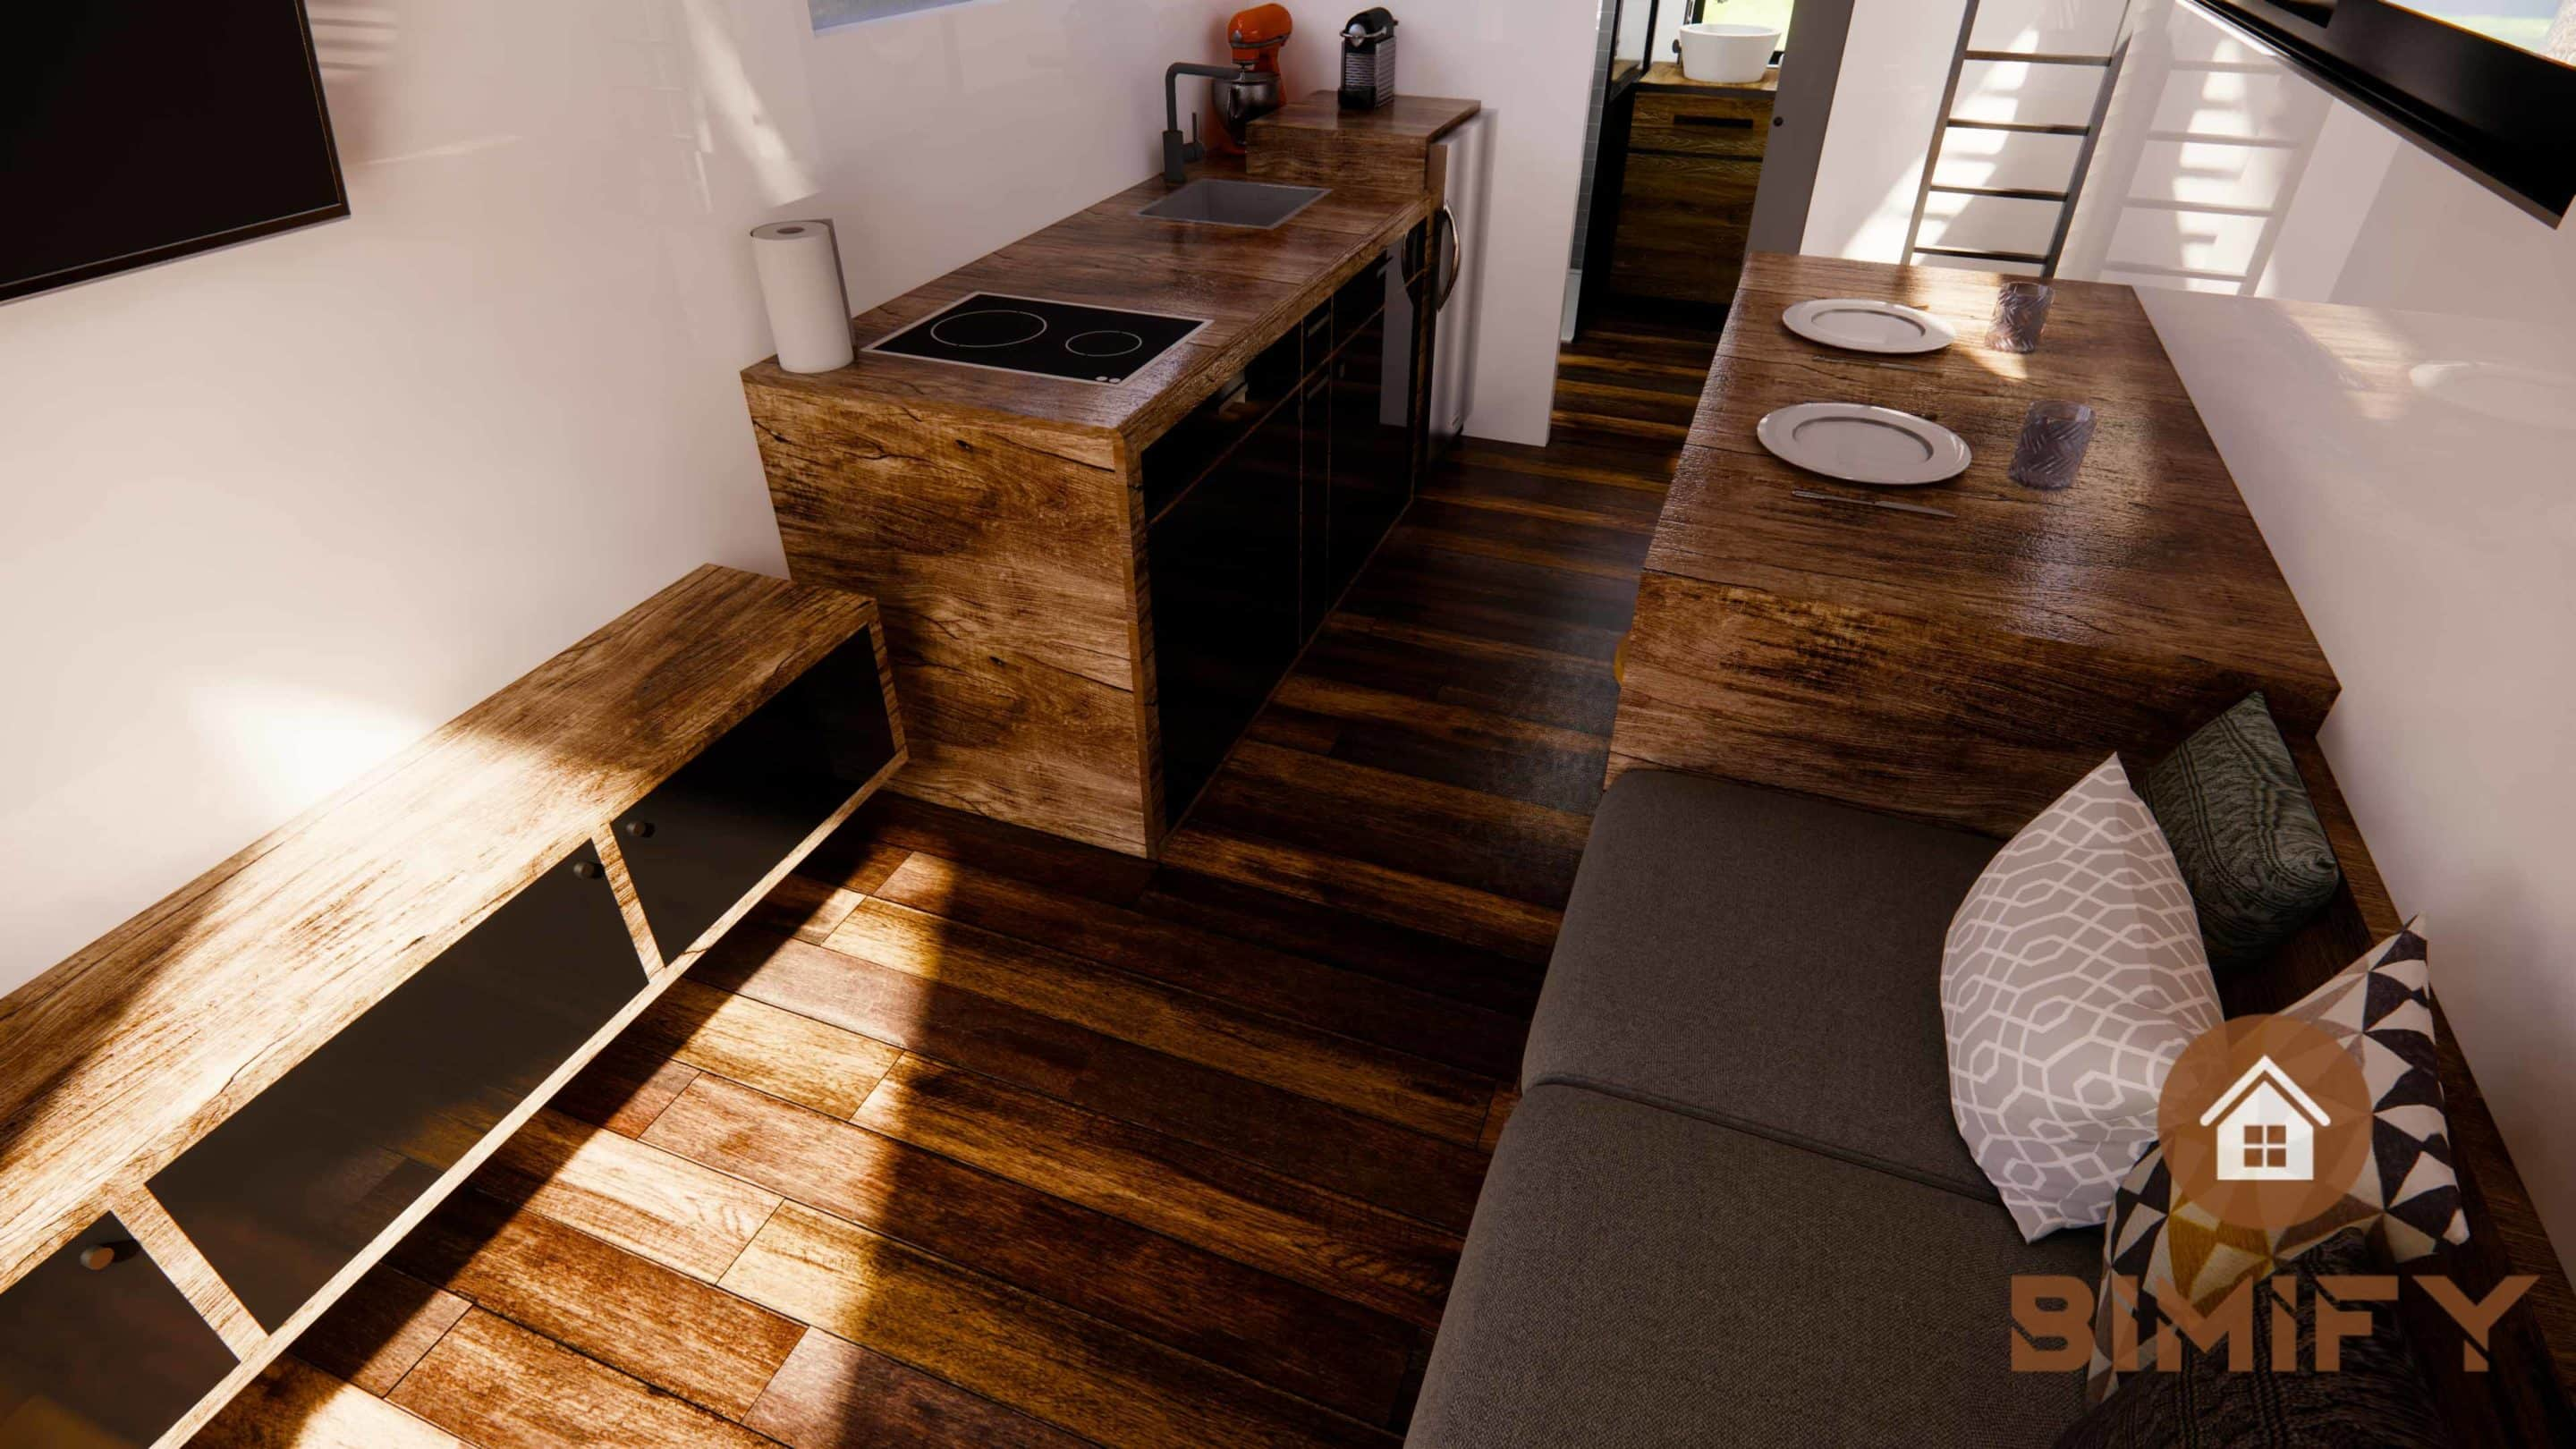 Tiny house layout and decoration